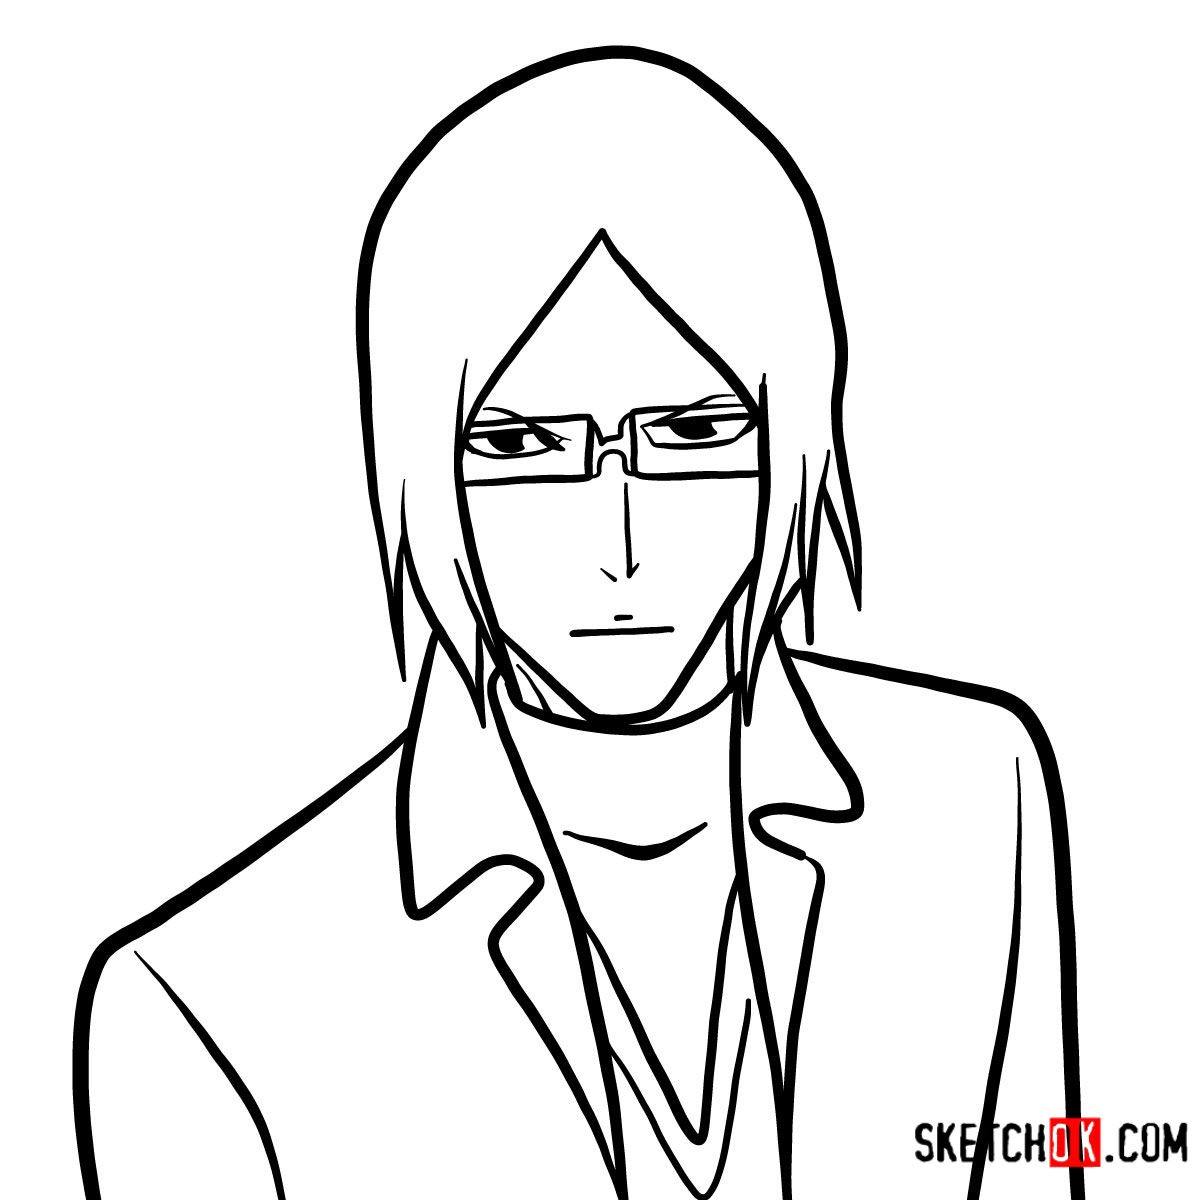 How to draw Uryū Ishida's face